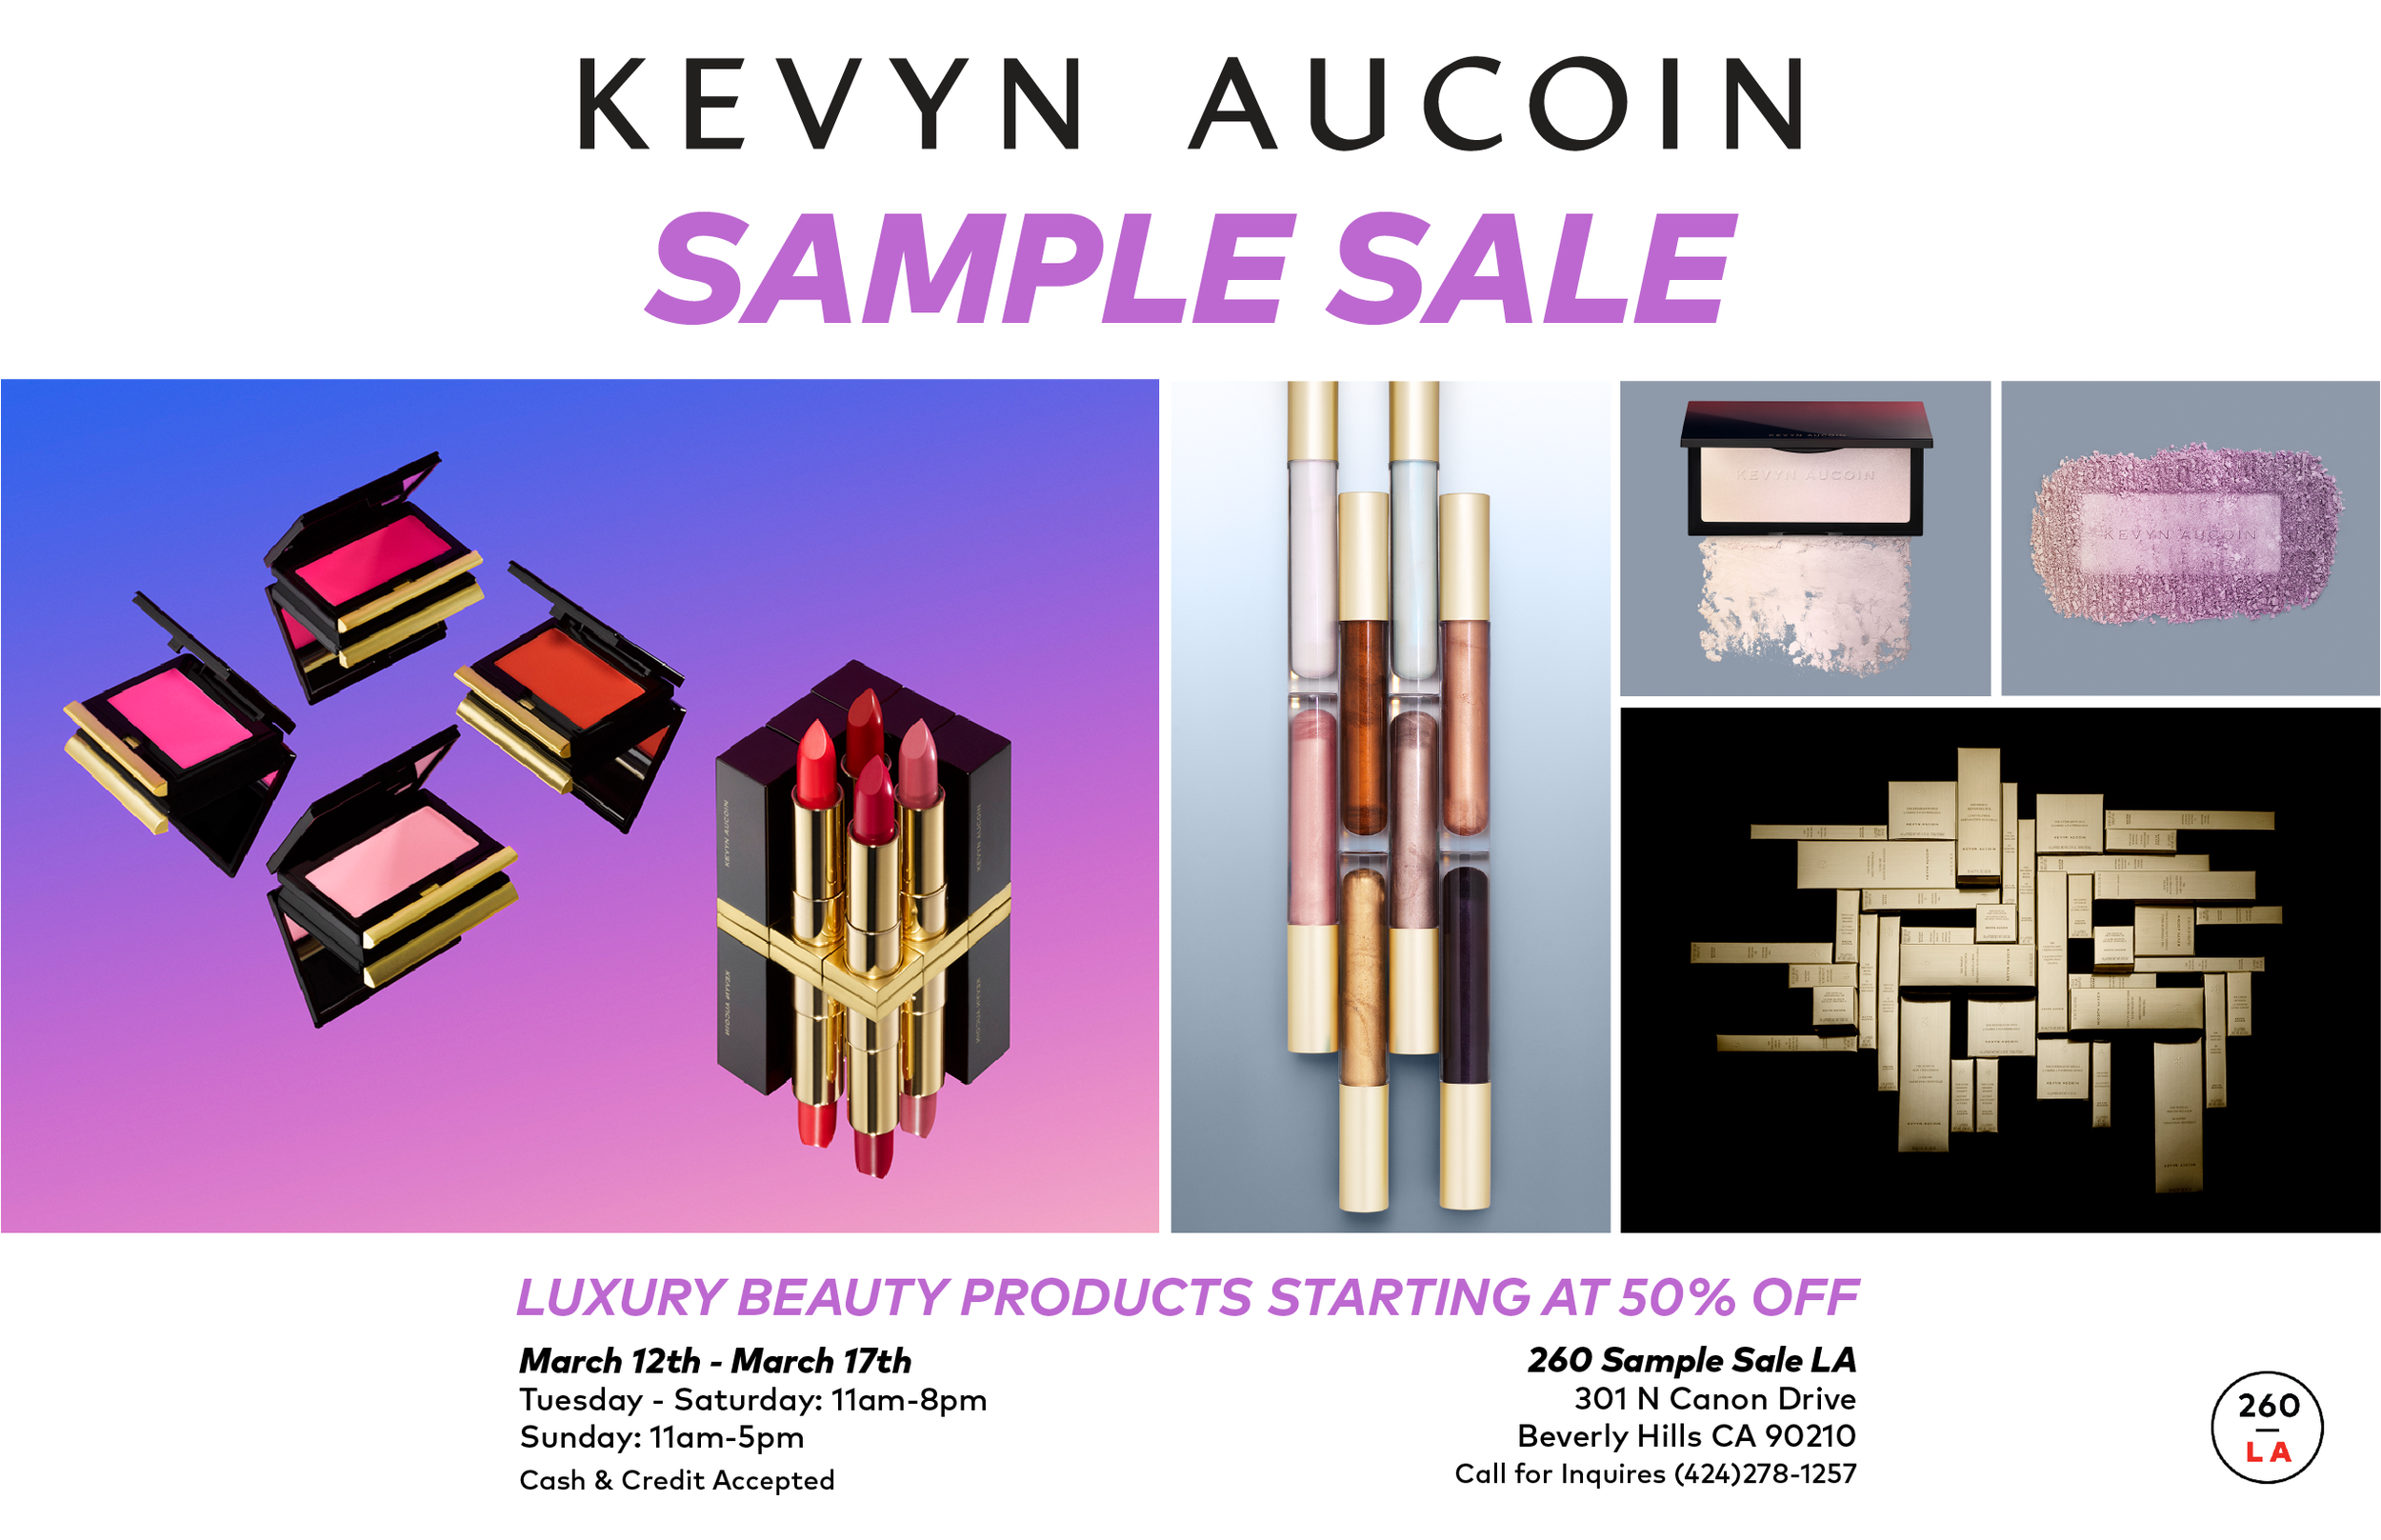 7e80316b9d KAB SampleSale 260LA-02.png. 260LA is excited to welcome the Kevyn Aucoin sample  sale ...